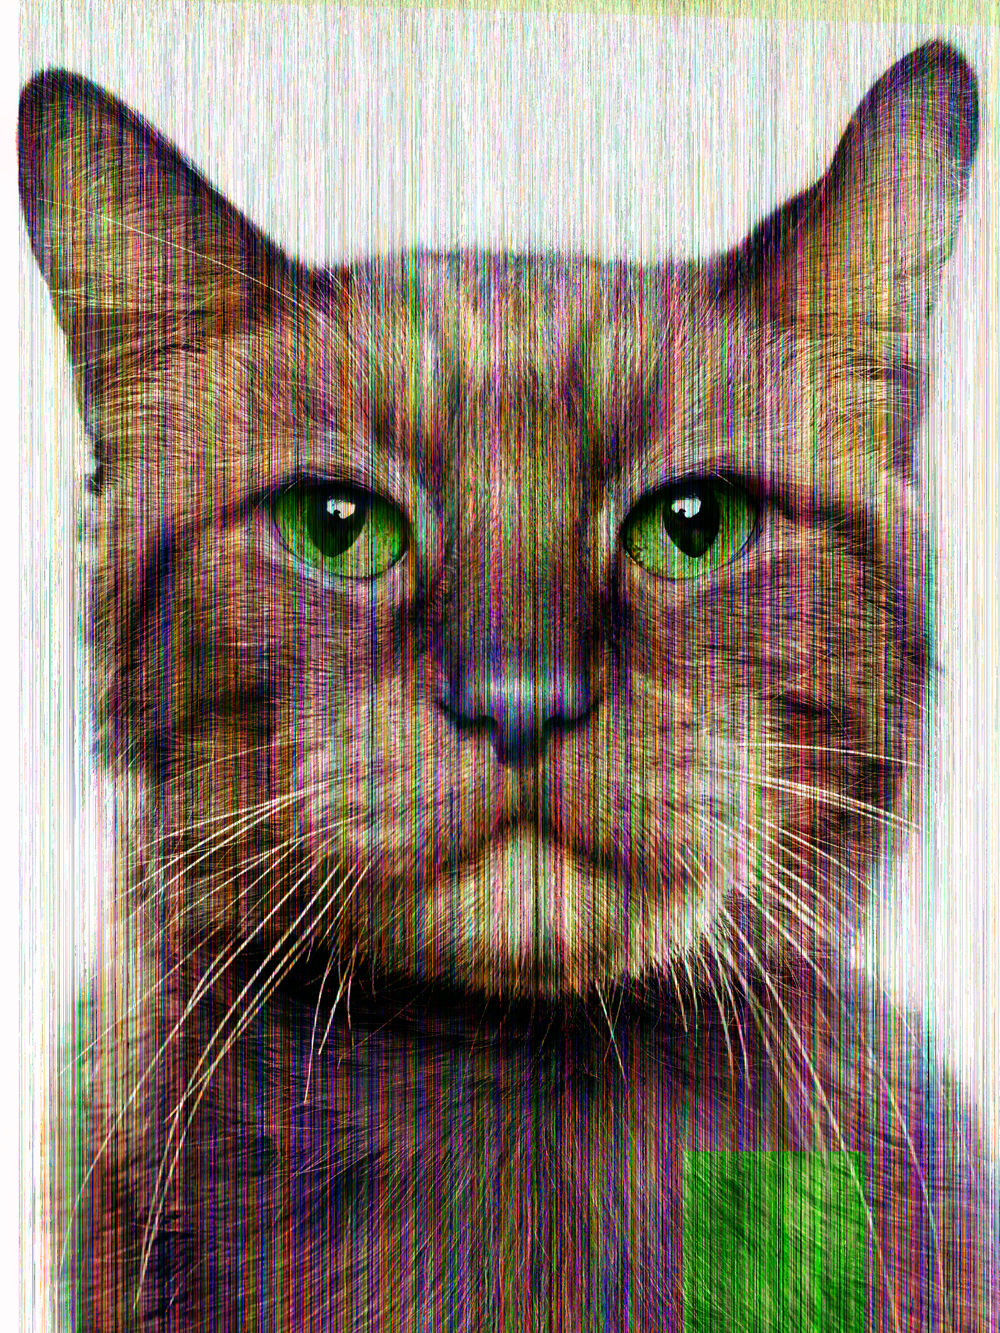 Glitch Cat (Morris), 2014 - Jill Greenberg